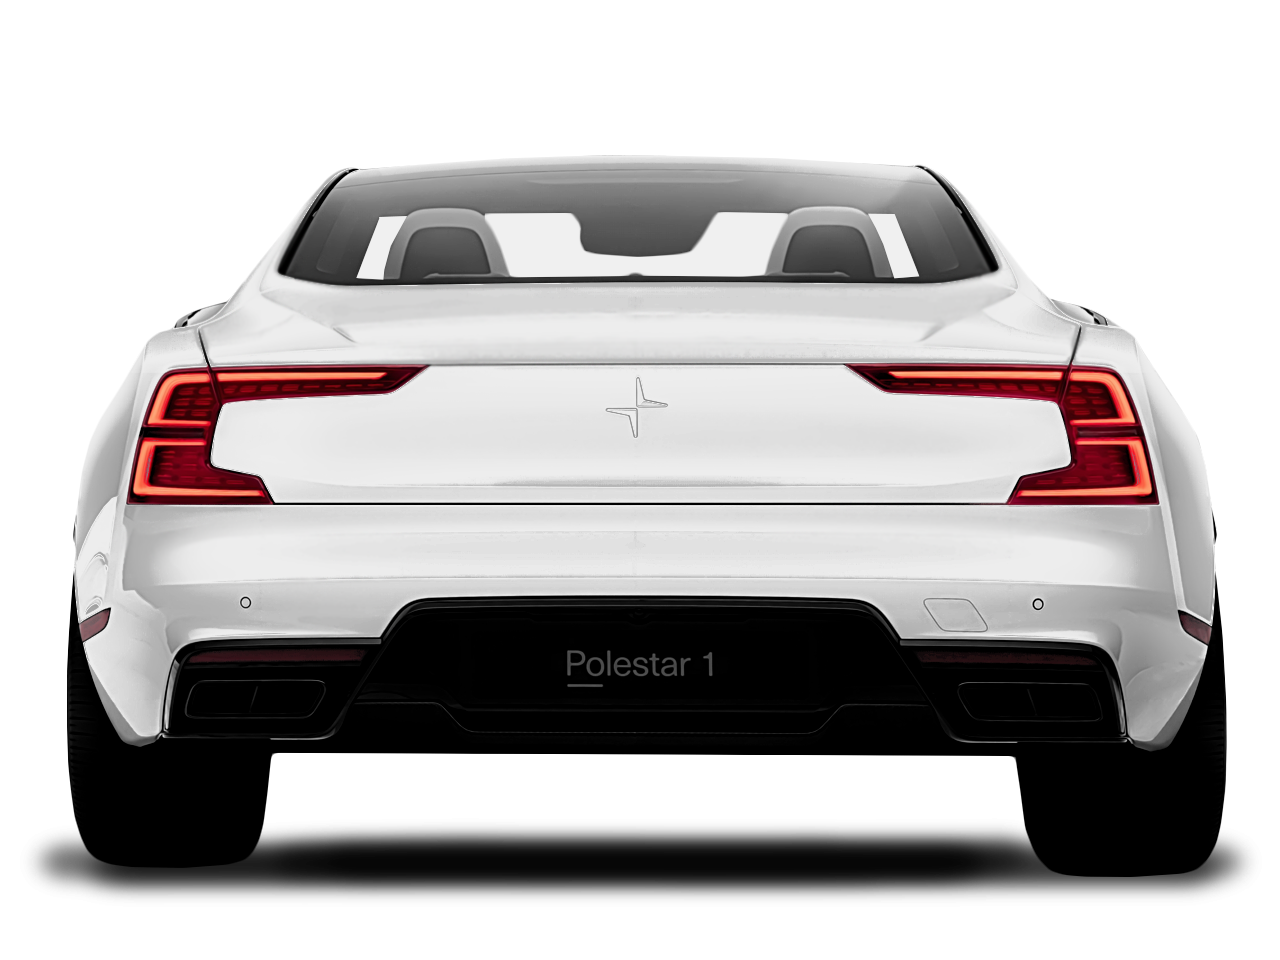 Trunk view of the Polestar 1